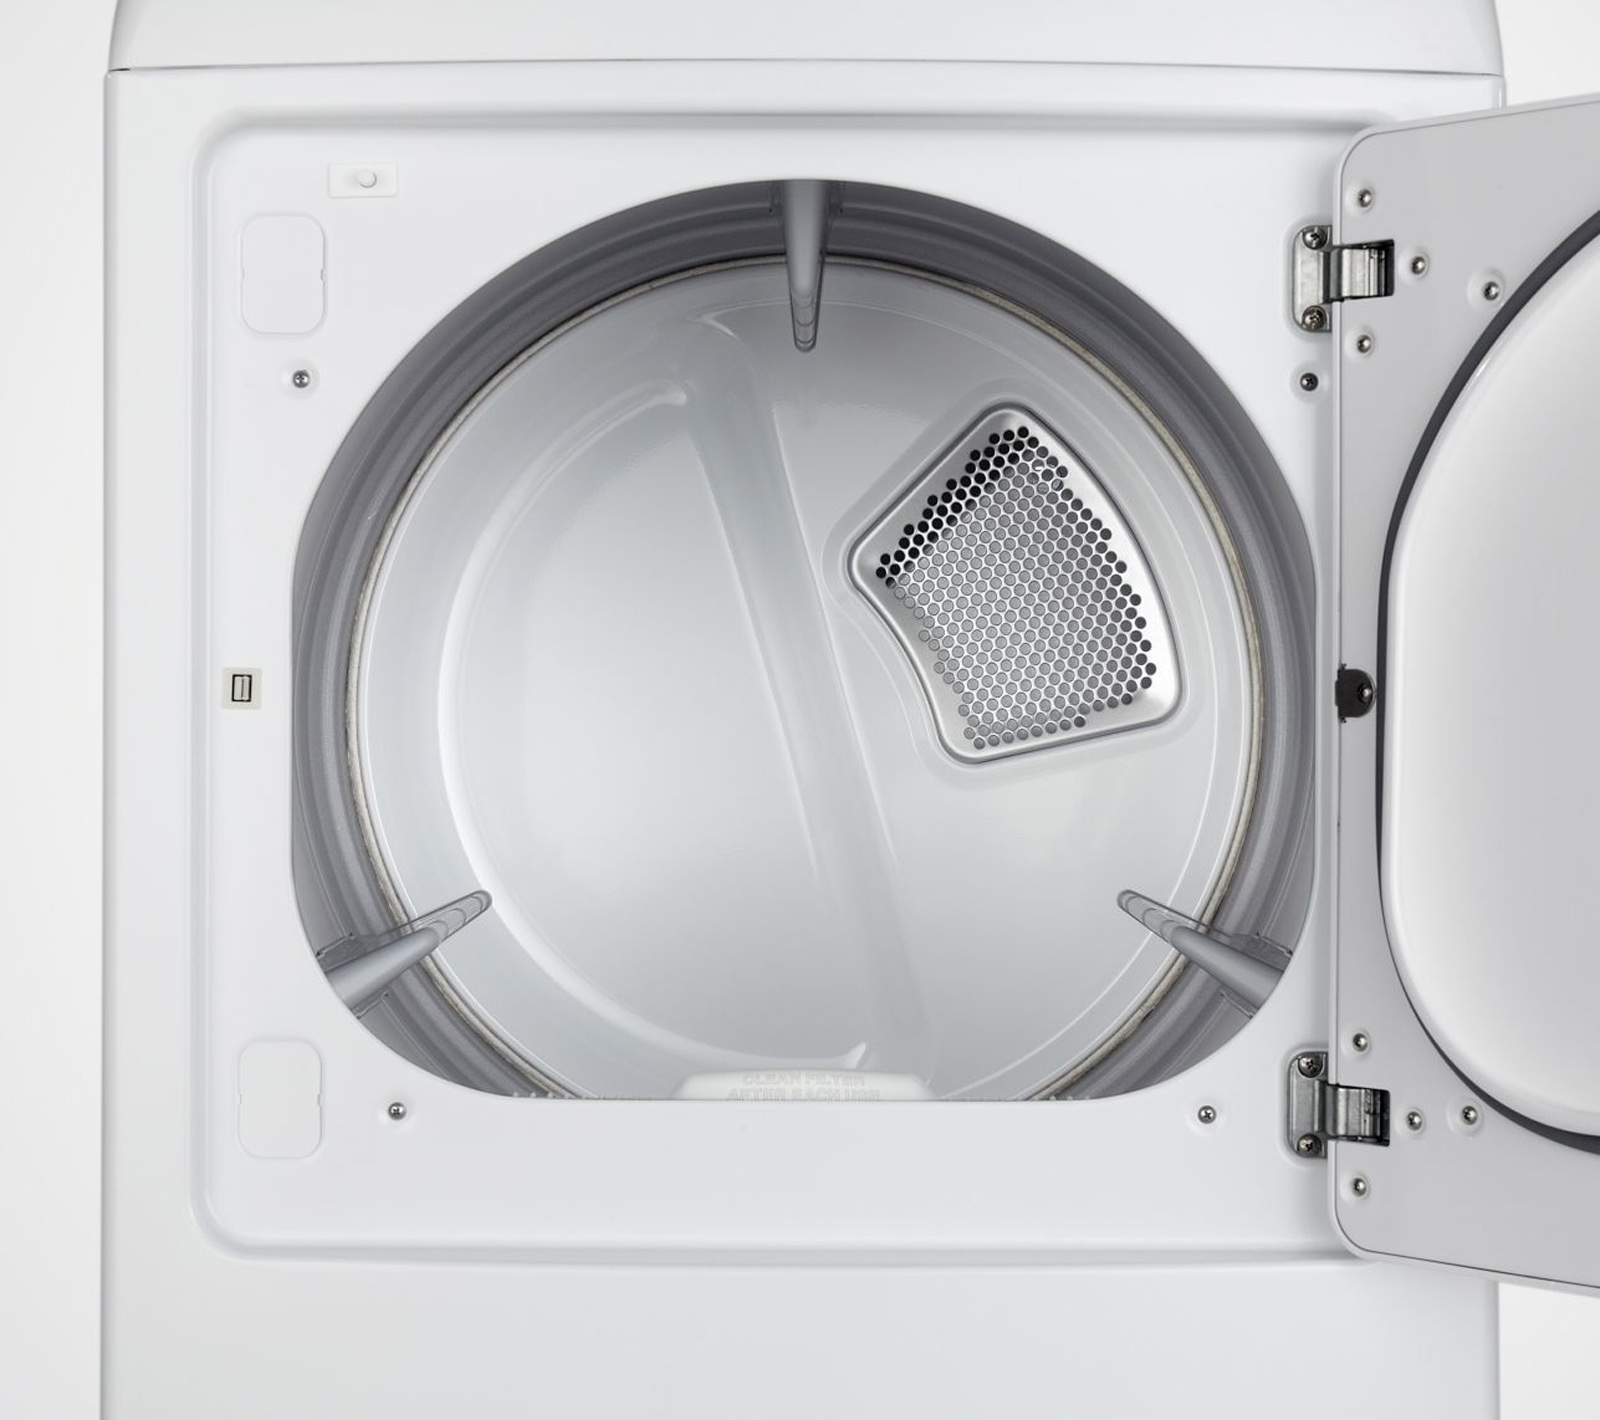 LG DLE1101W 7.3 cu. ft. Electric Dryer - White